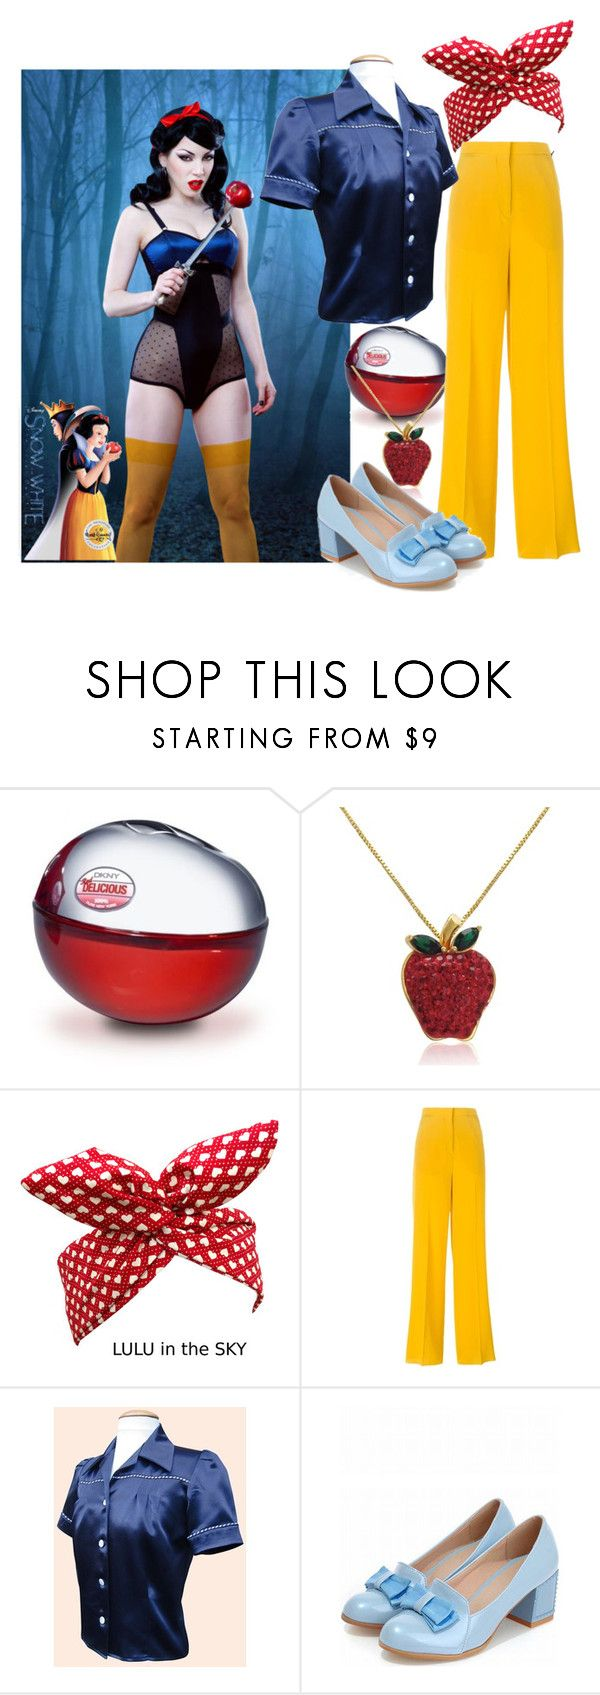 """Sno' Wat?"" by serinde ❤ liked on Polyvore featuring DKNY, Amanda Rose Collection, Rochas, women's clothing, women's fashion, women, female, woman, misses and juniors"